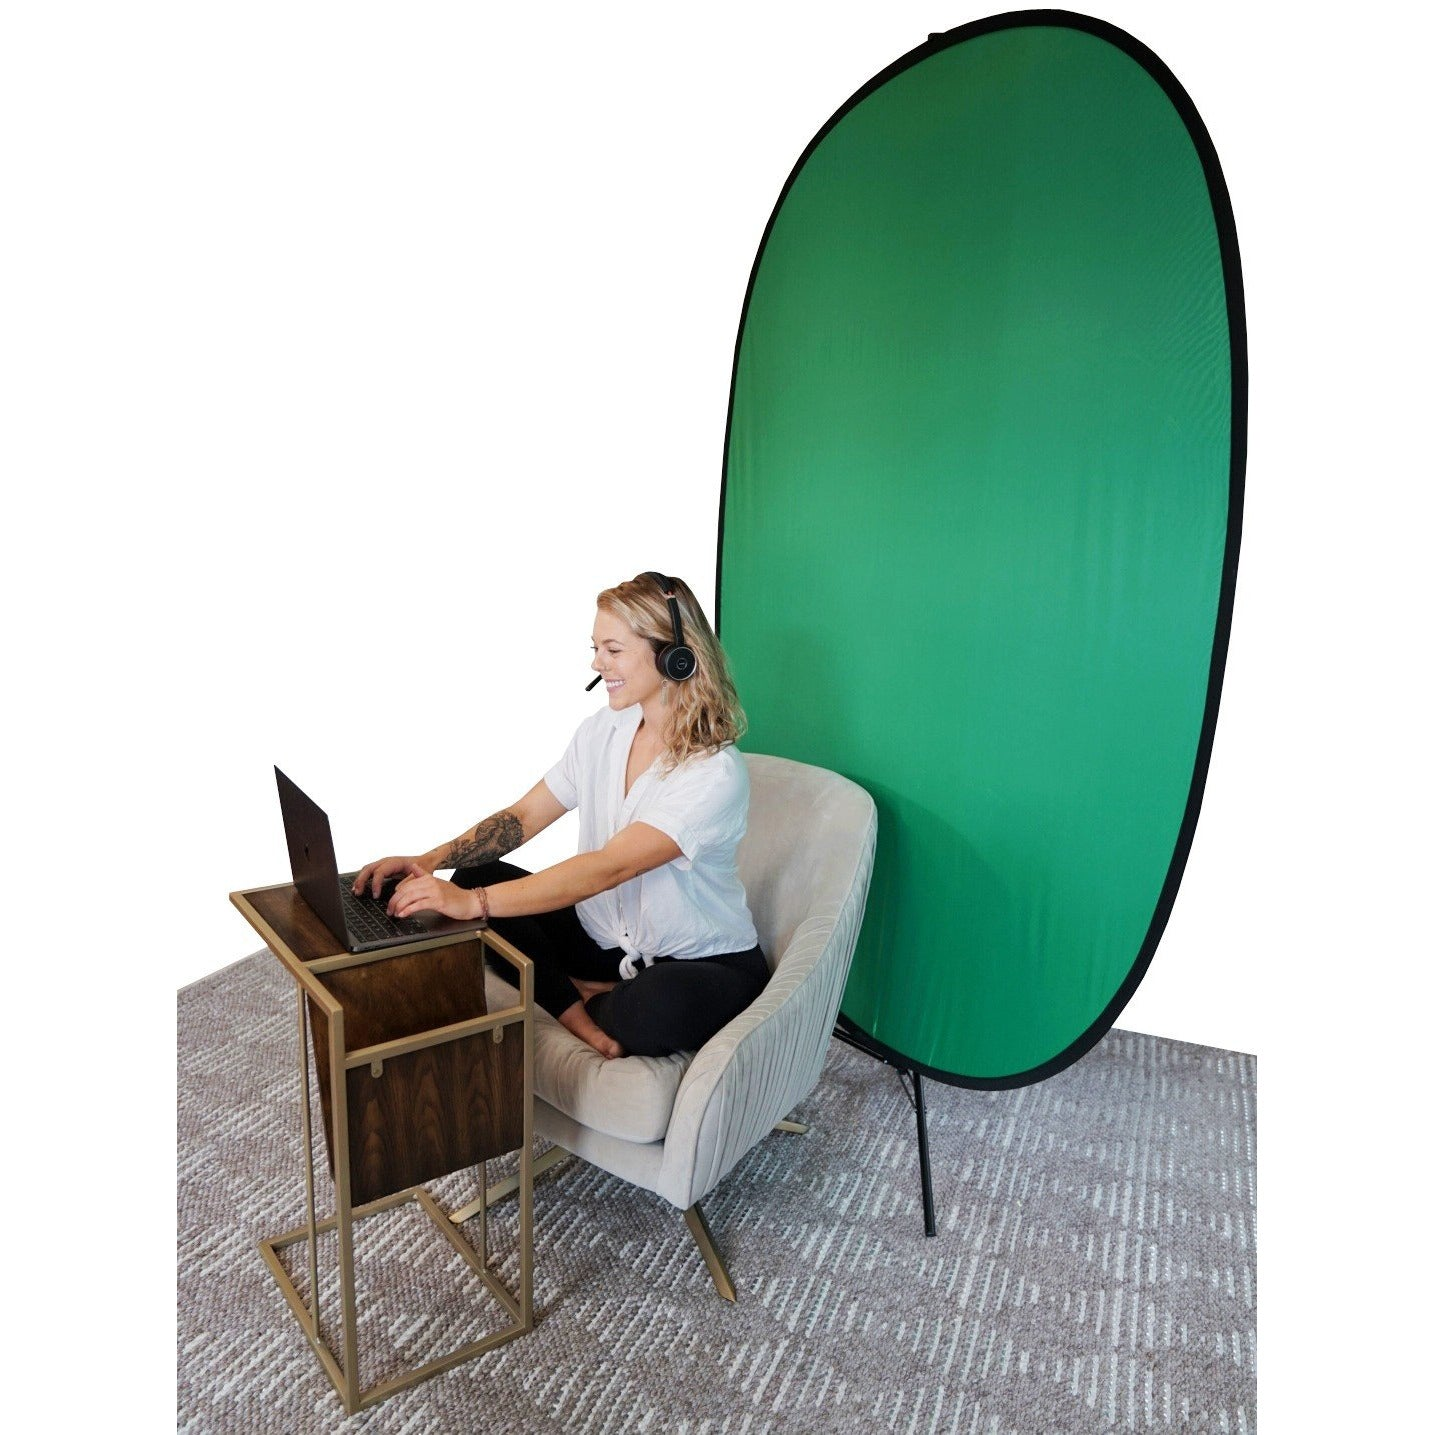 The Backdrop | Portable Webcam Green Screen - RemoteOffice